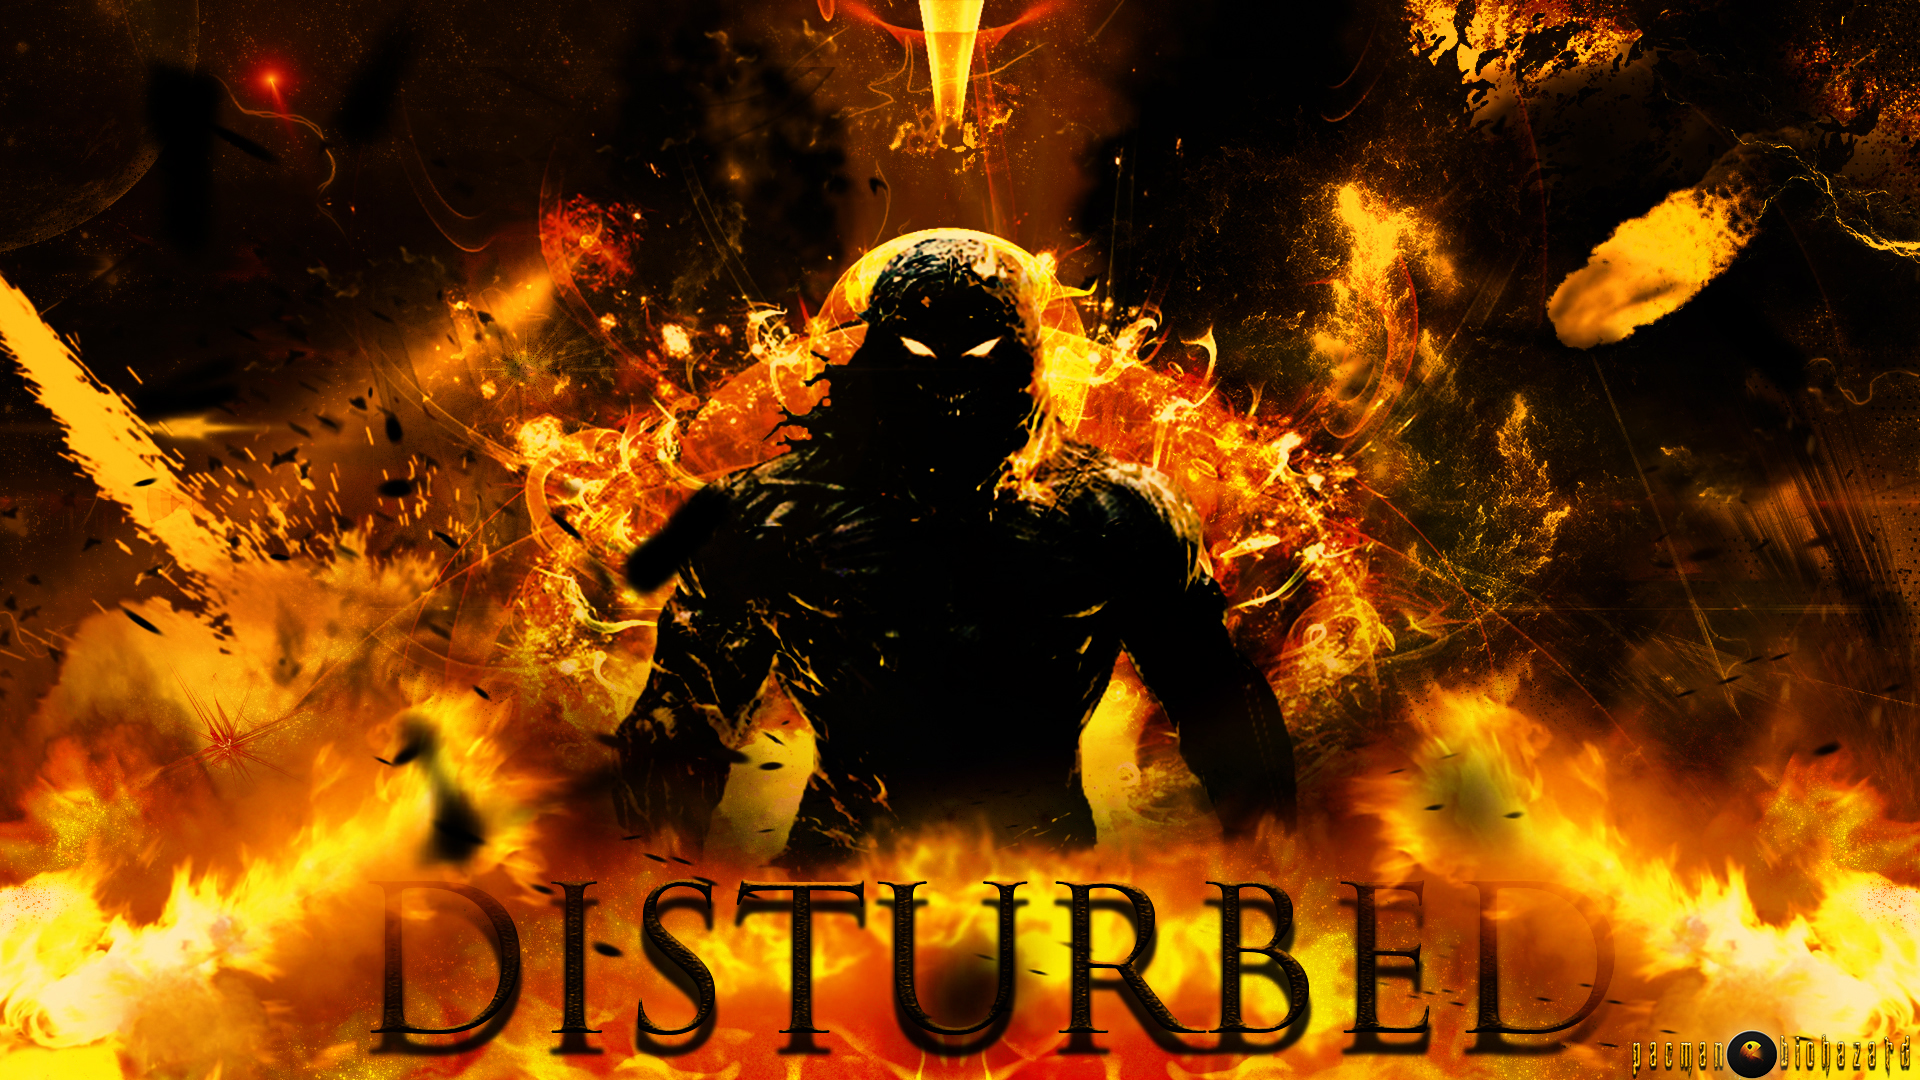 Disturbed Band HD Indestructible Background by pacmanbiohazard on 1920x1080